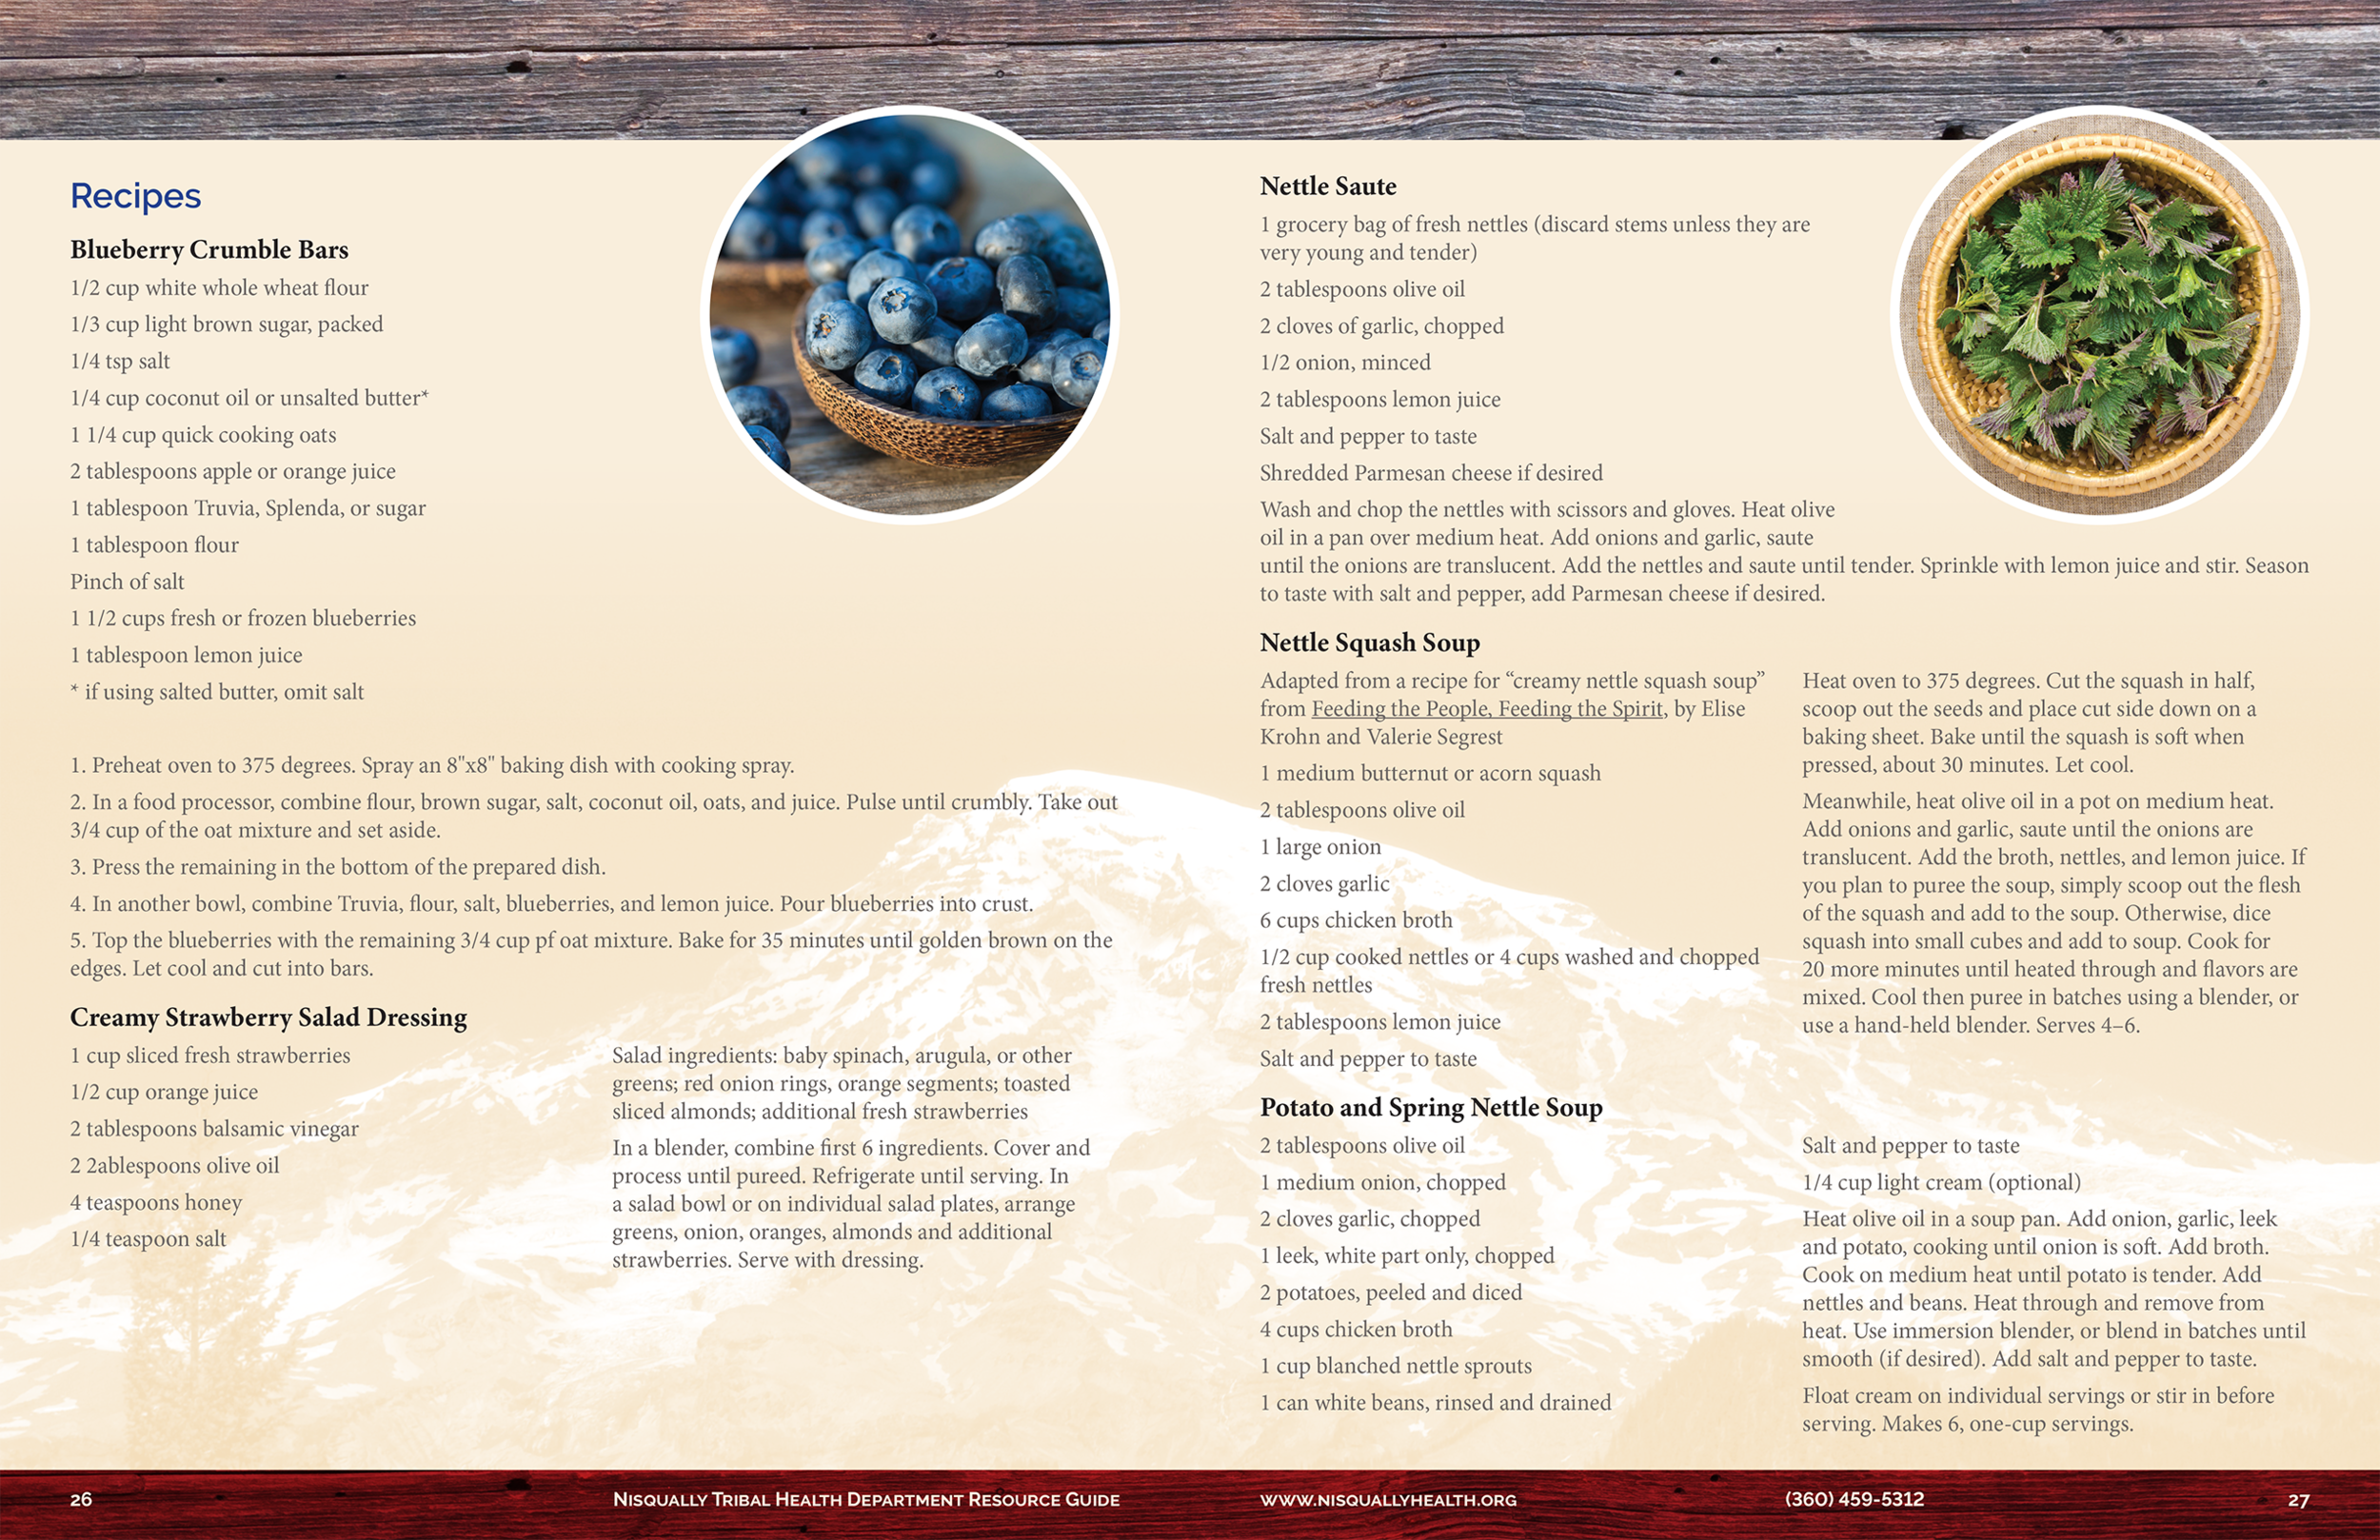 Nisqually Health Resource Guide 2016-14.png